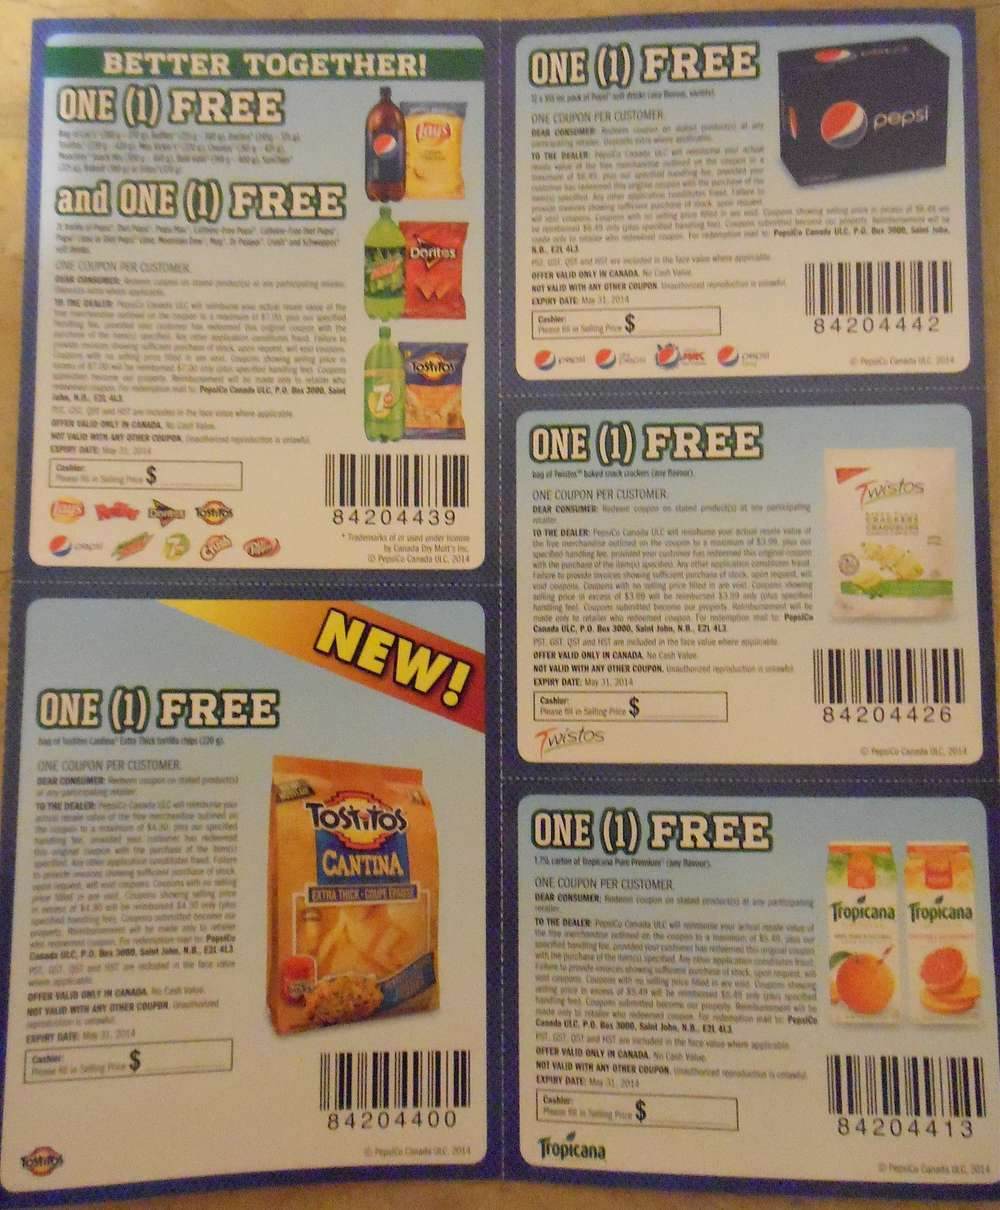 Pepsi/Tostitos $20.00 Coupon Booklet